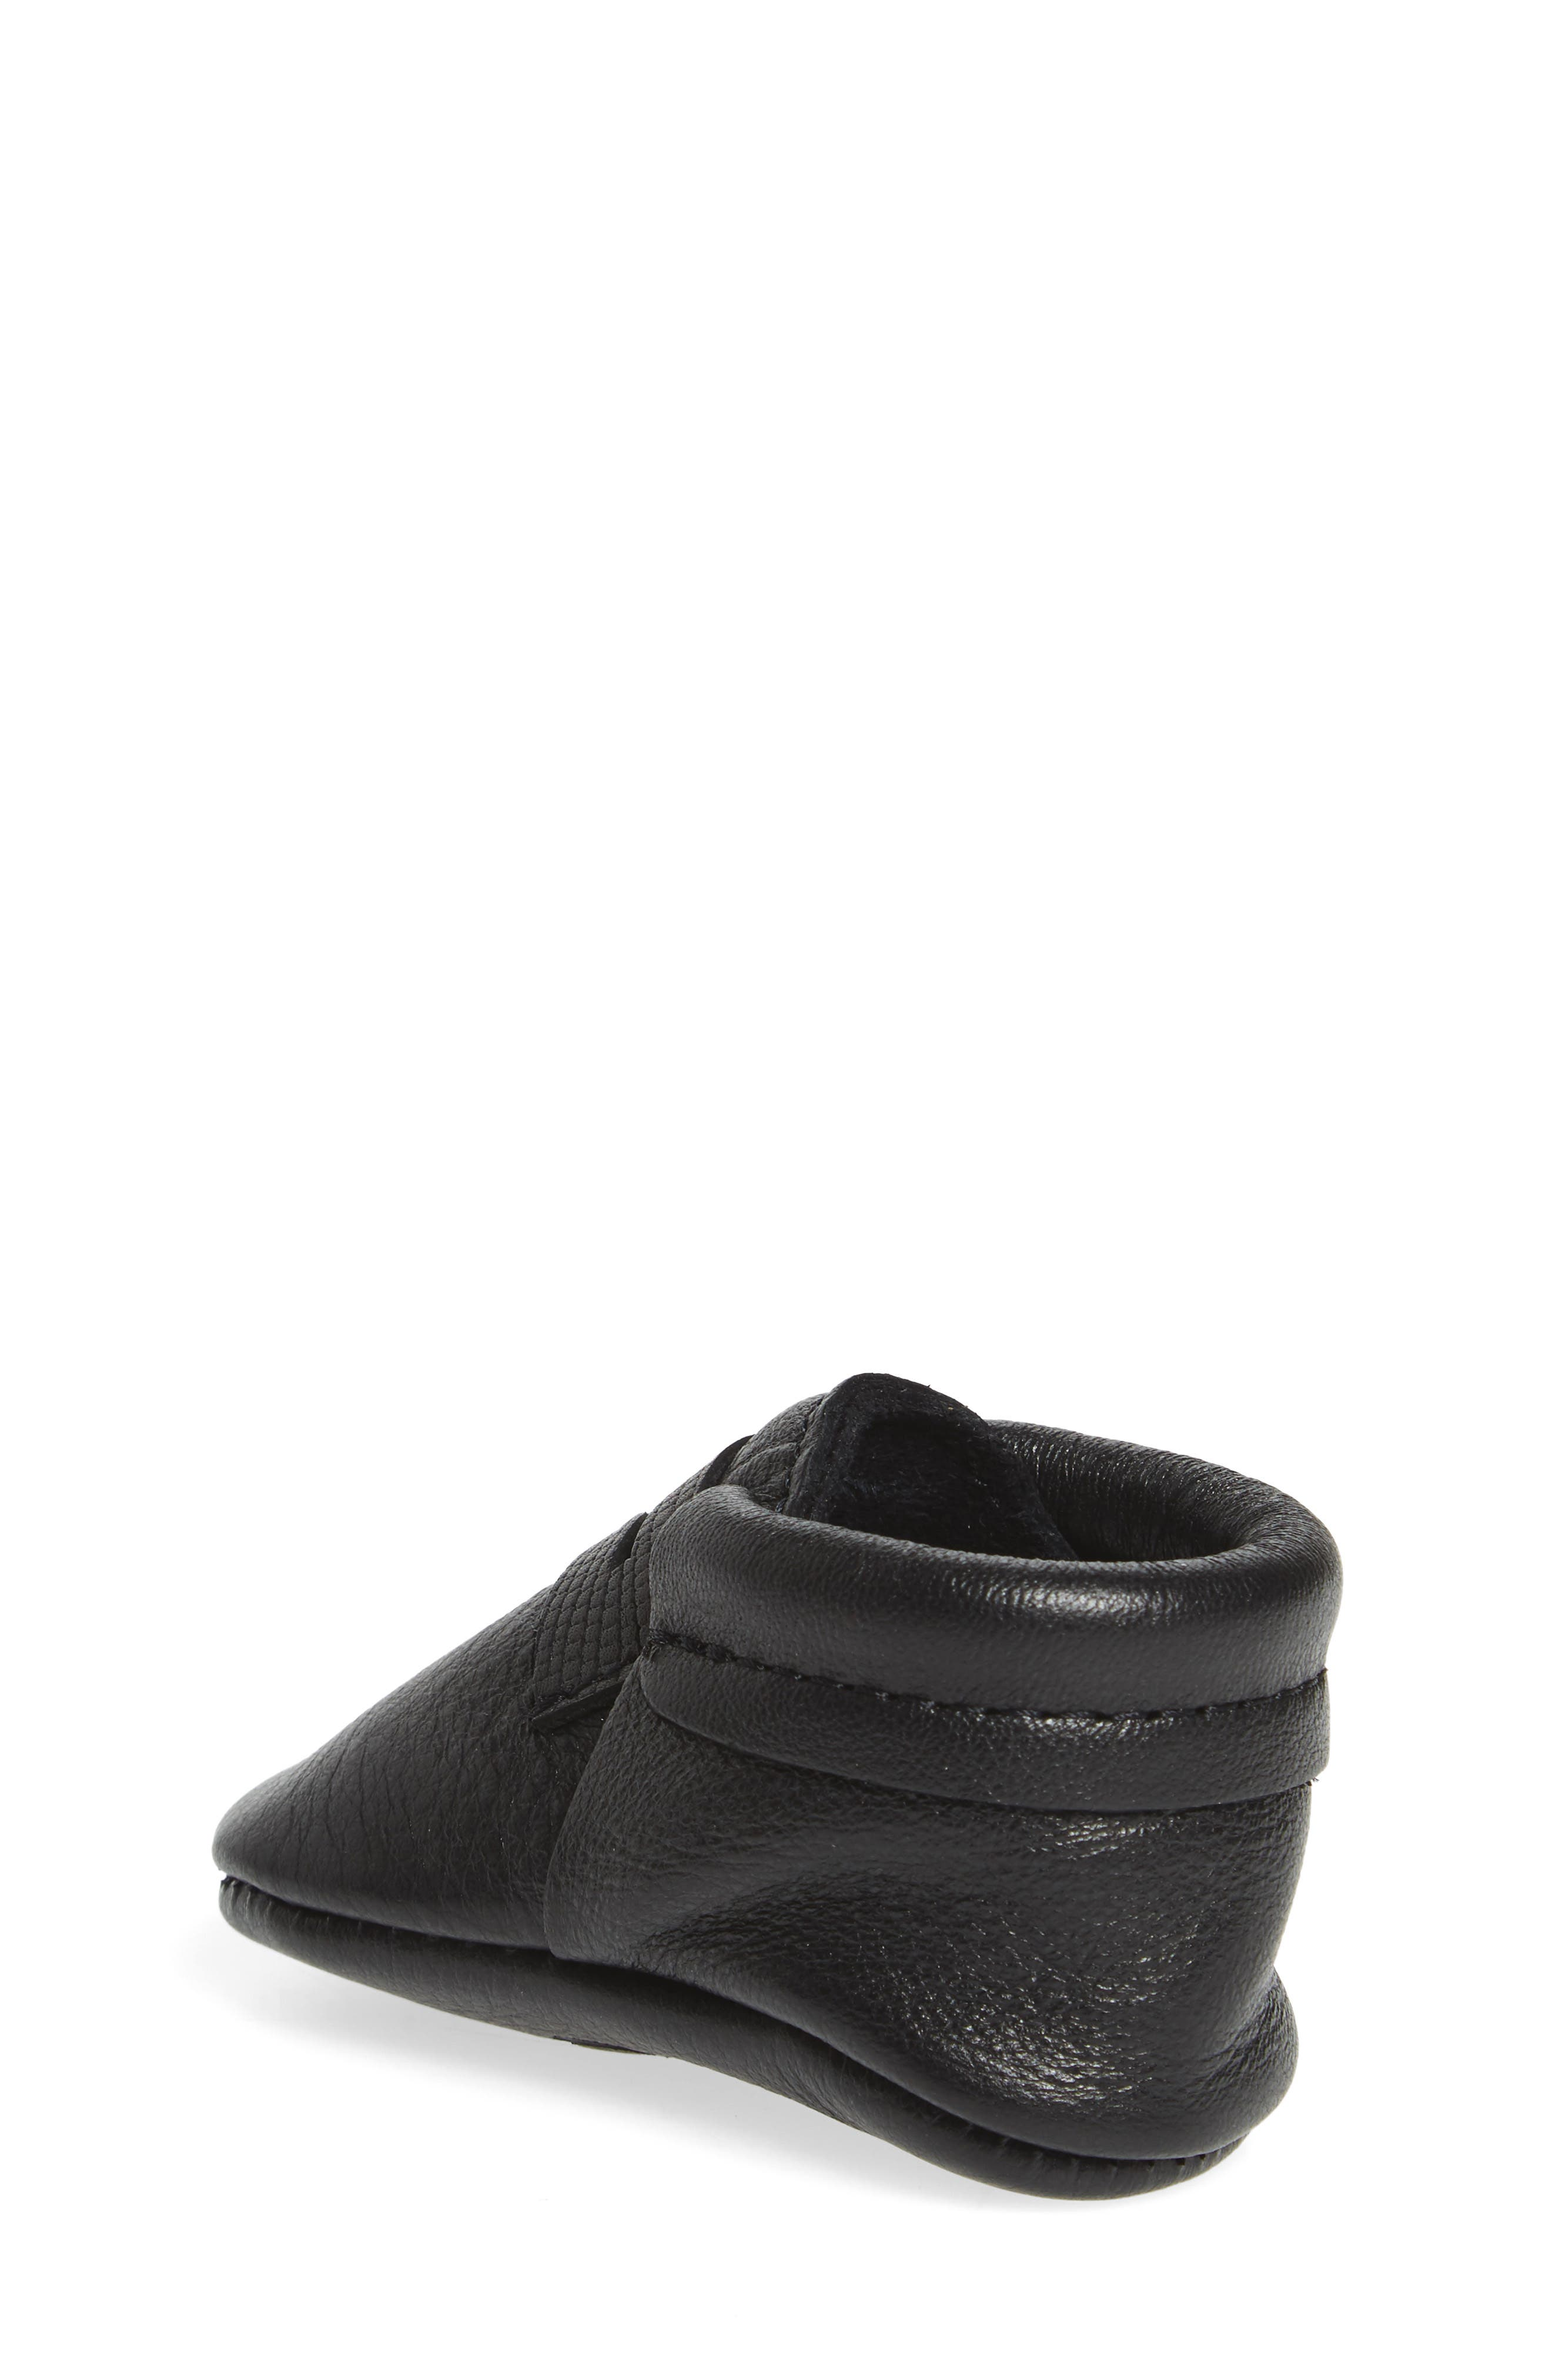 Penny Loafer Crib Shoe,                             Alternate thumbnail 2, color,                             001